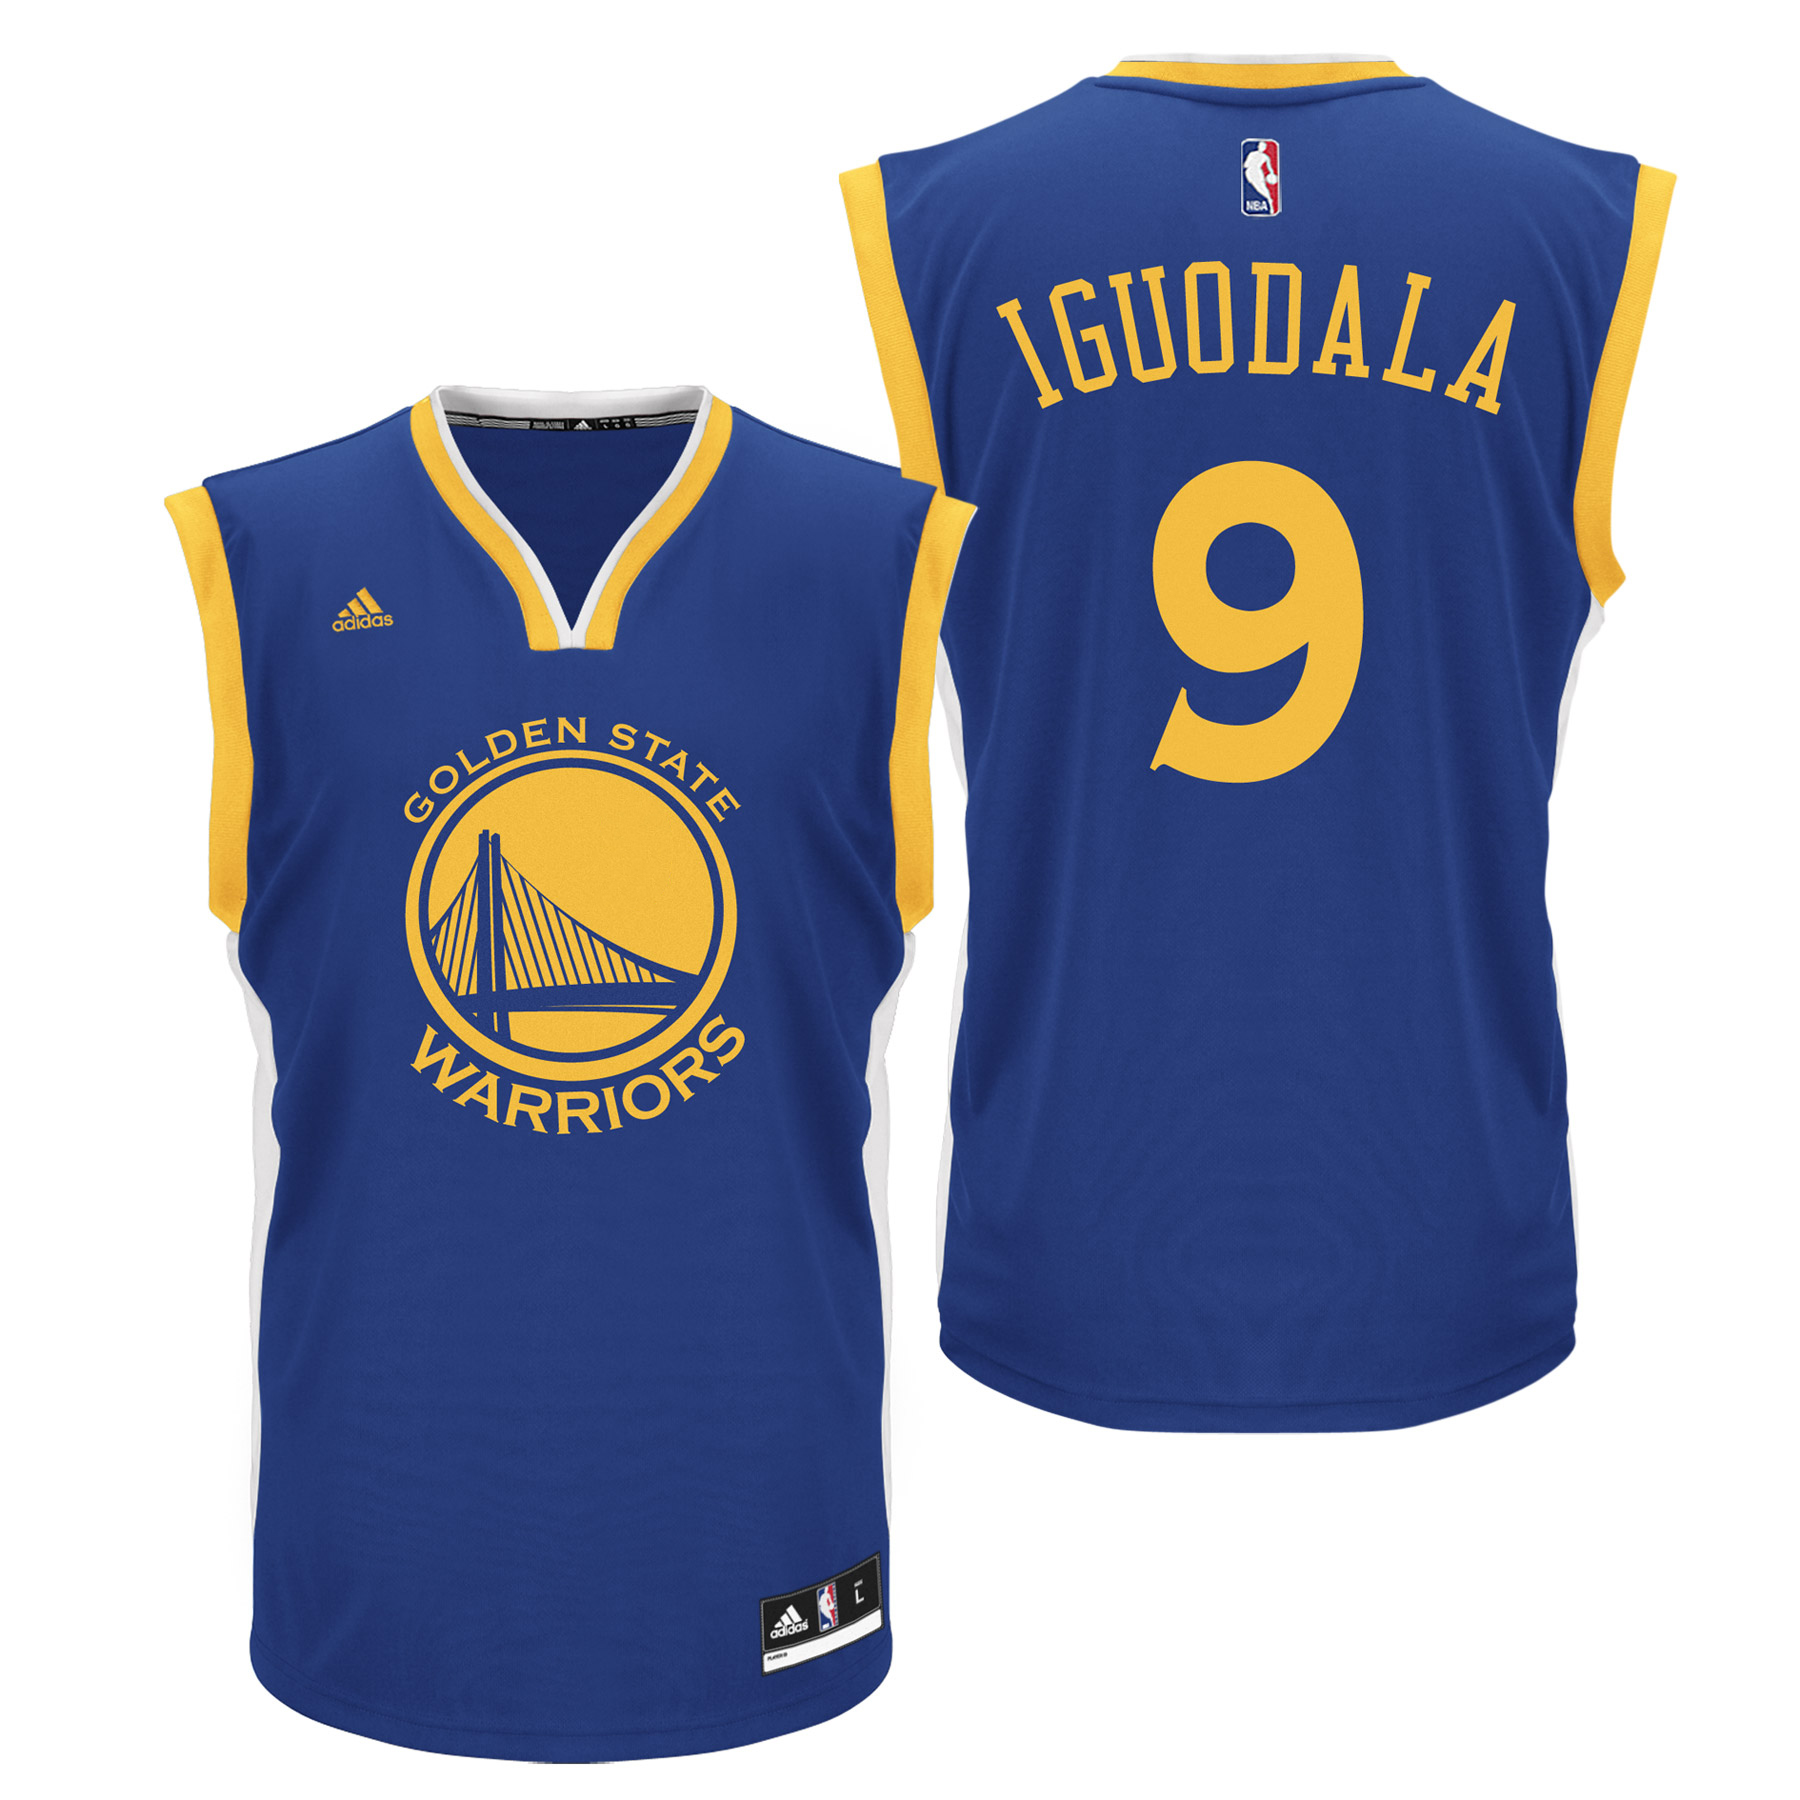 Golden State Warriors Road Replica Jersey - Andre Iguodala - Mens